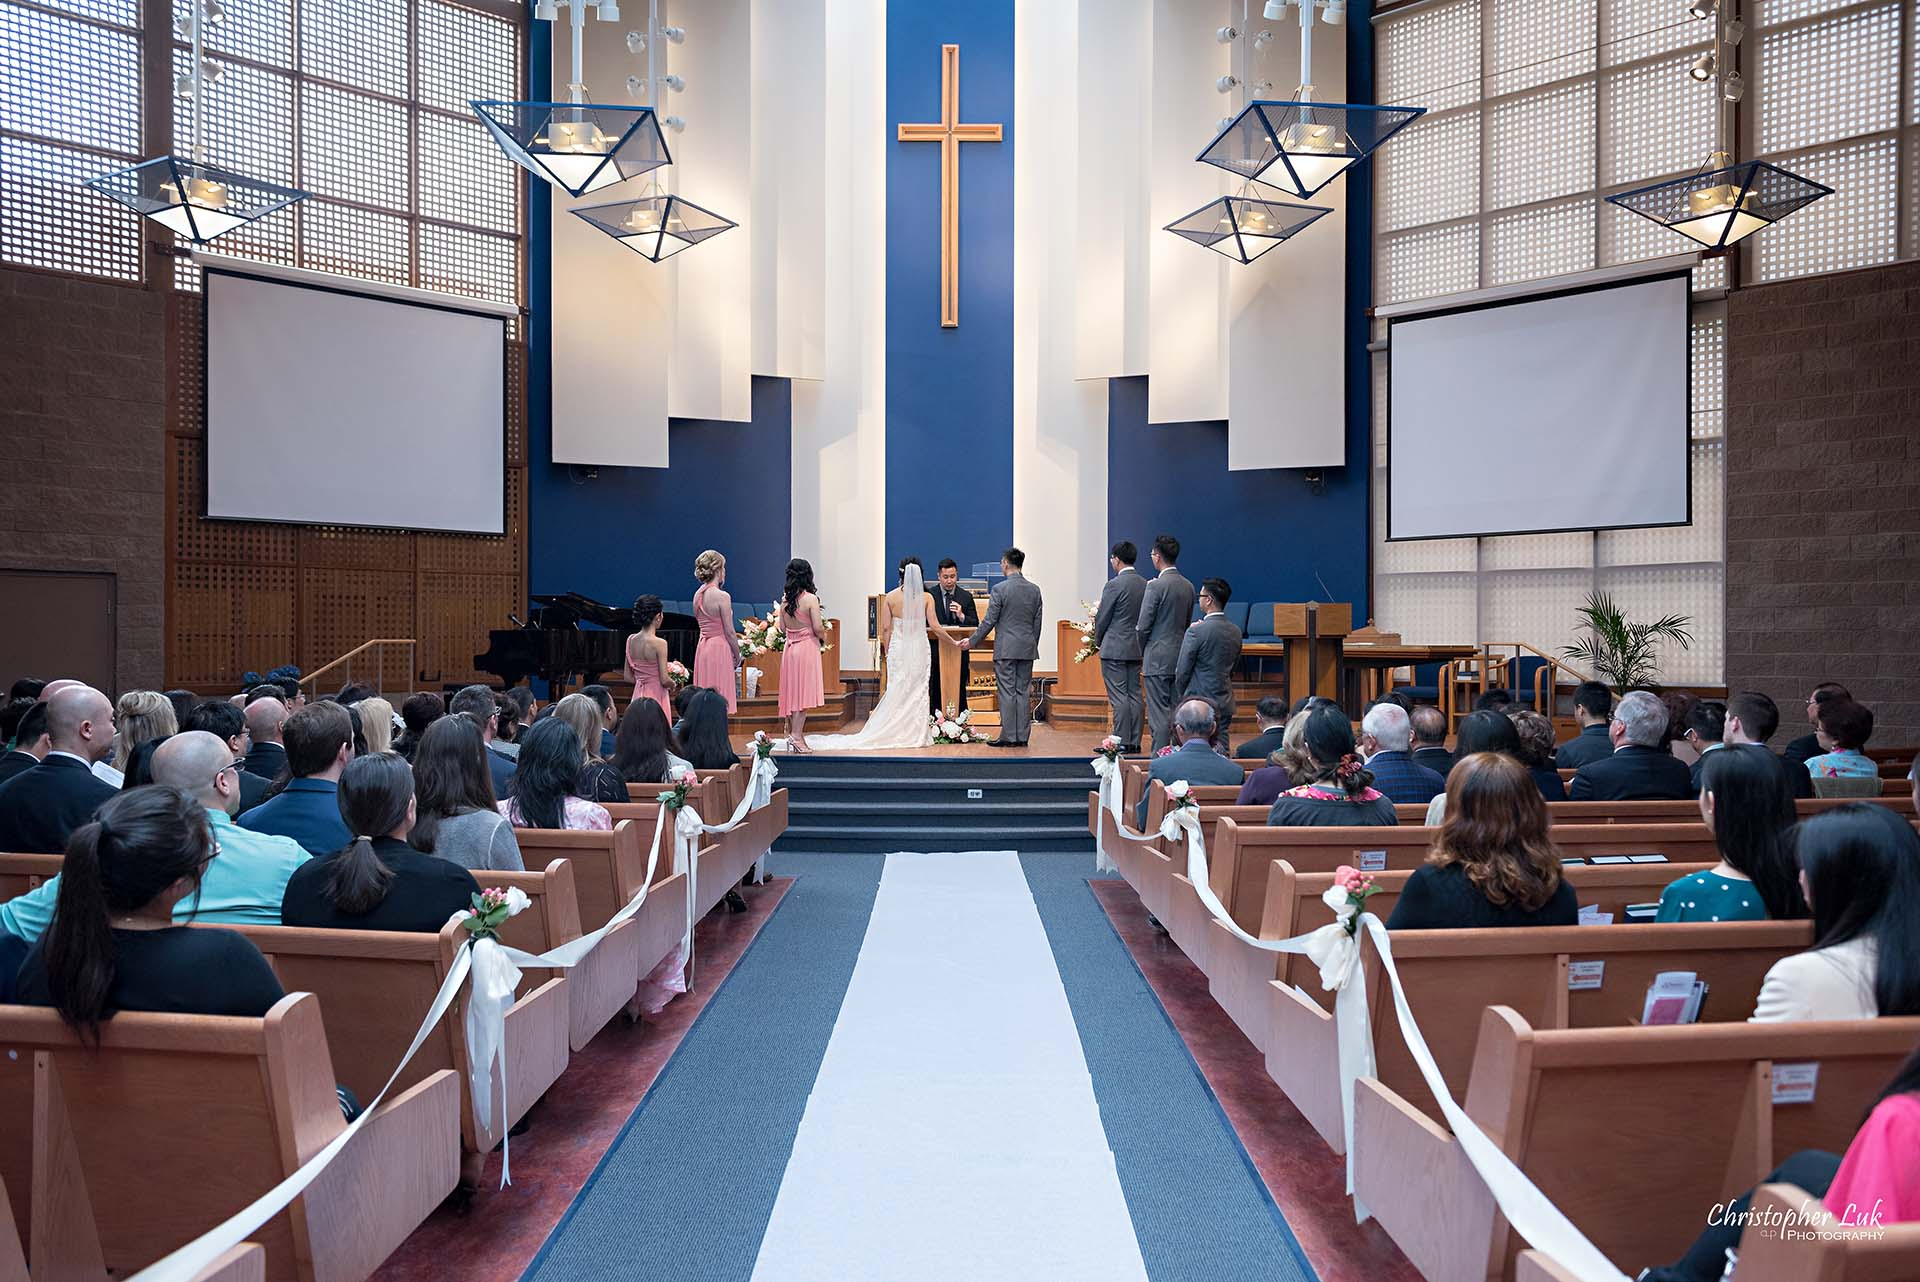 Christopher Luk Toronto Wedding Photographer Trinity York Mills Church Ceremony Sanctuary Candid Natural Photojournalistic Groom Bride Landscape Wide Centre Aisle Runner